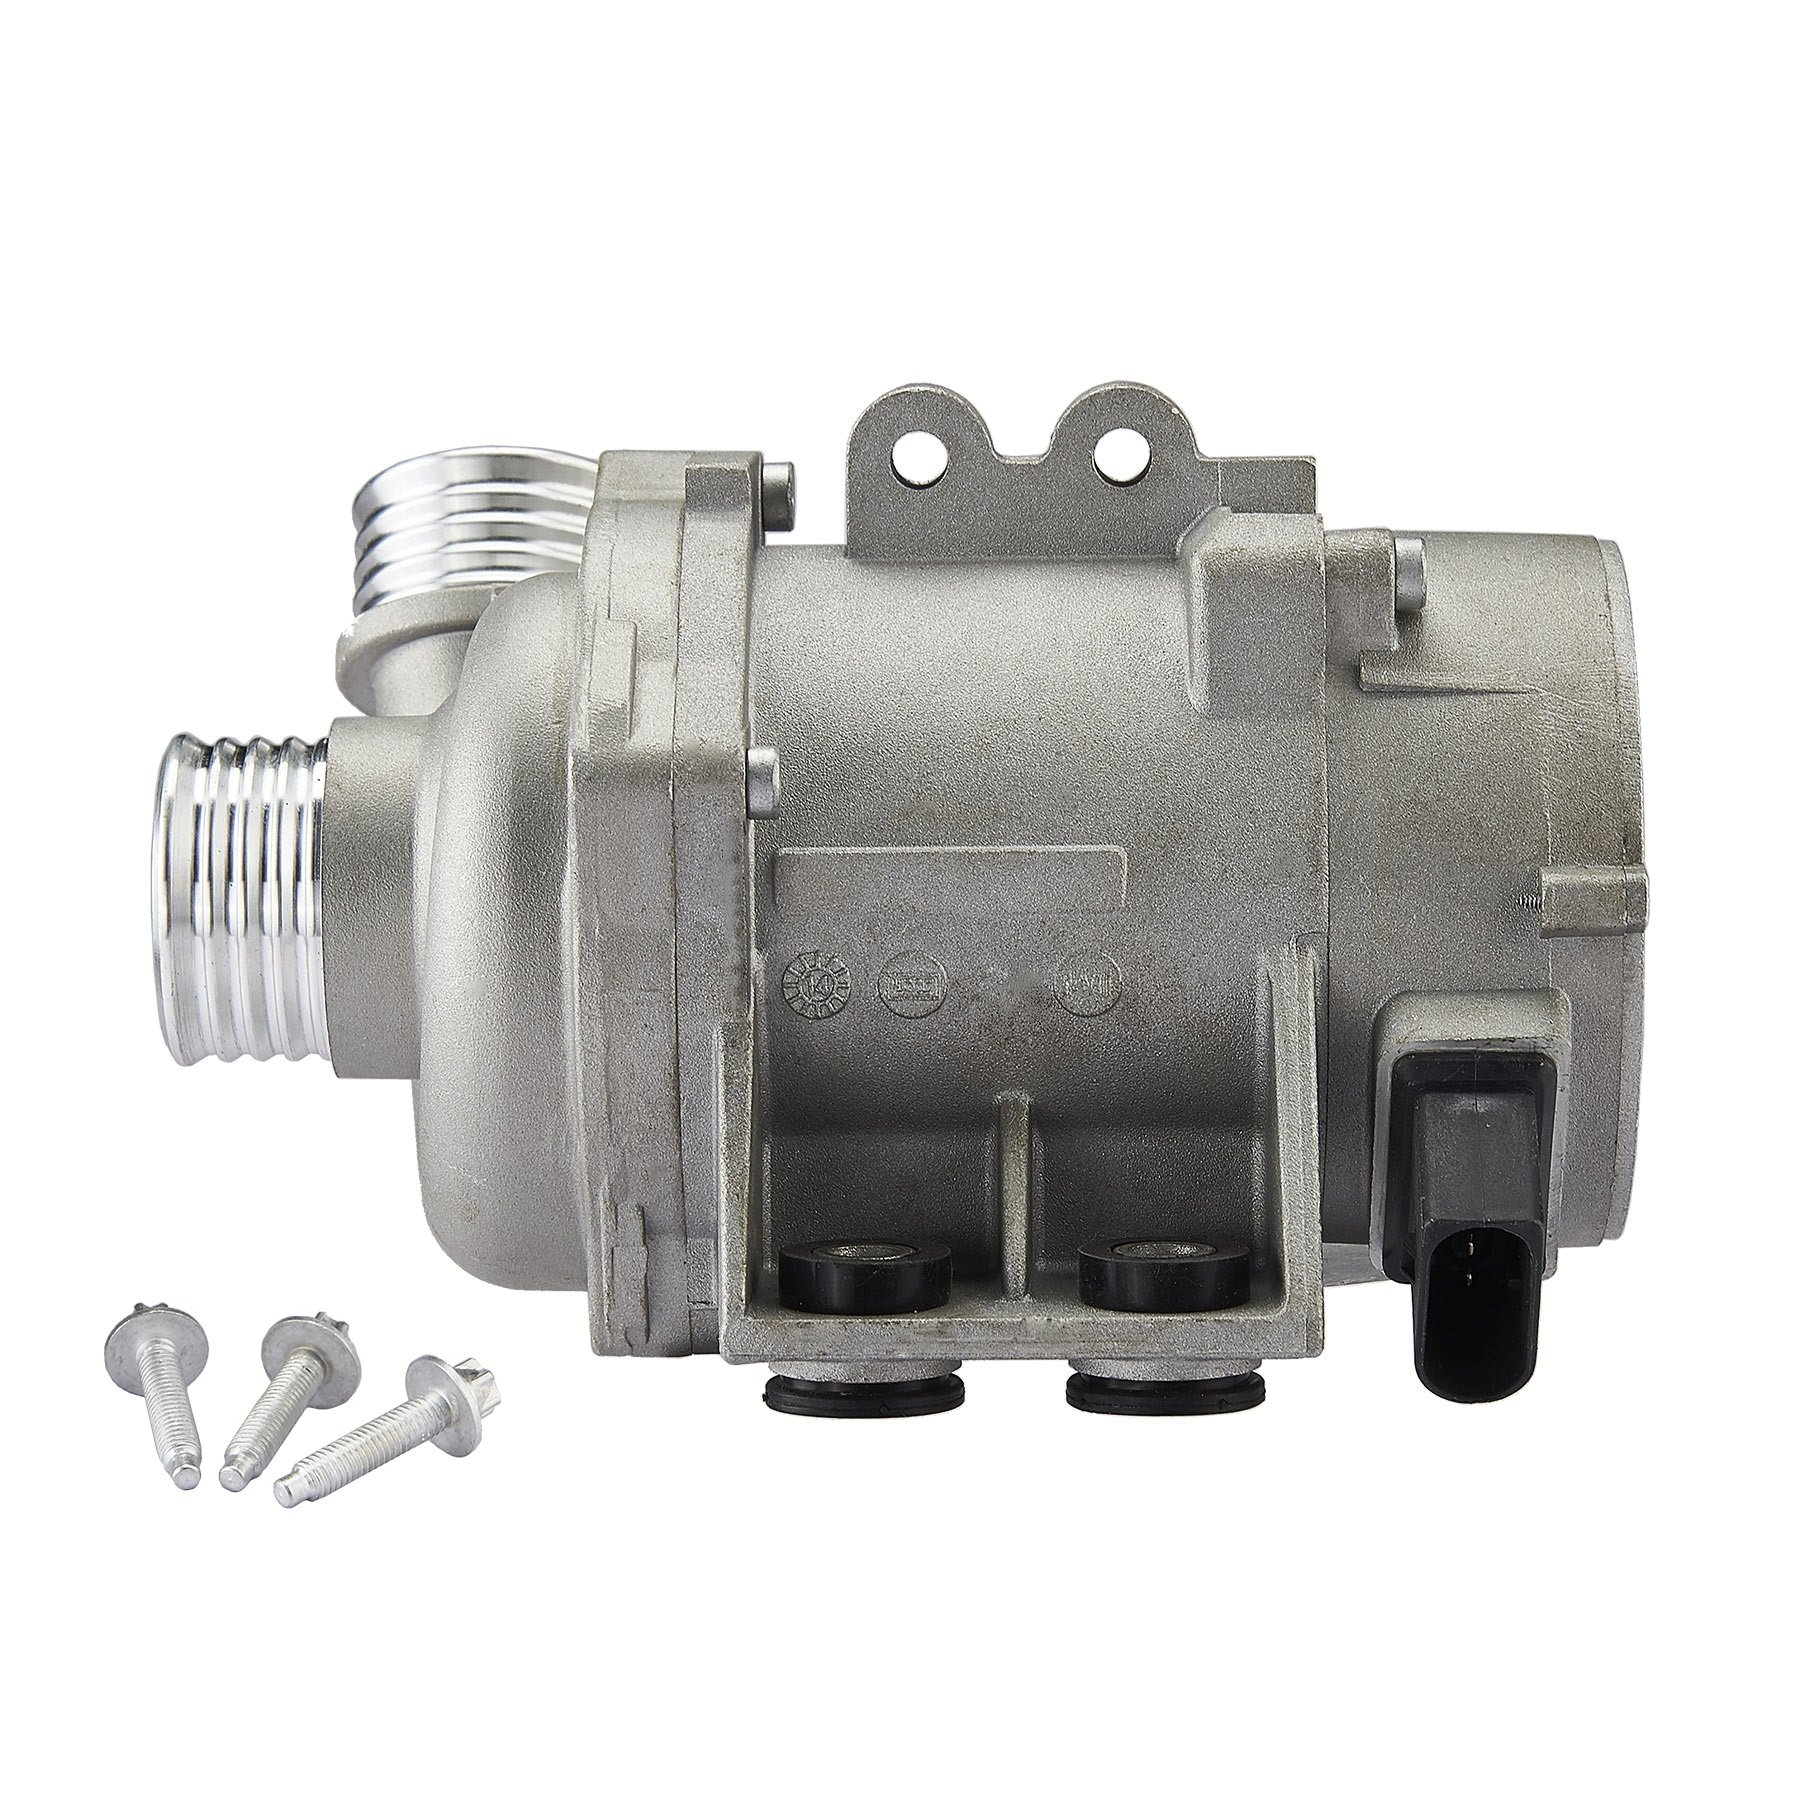 Orion Motor Tech BMW Engine Electric Water Pump with Bolts, 11517586925, 702851208, 11517563183, 11510392553